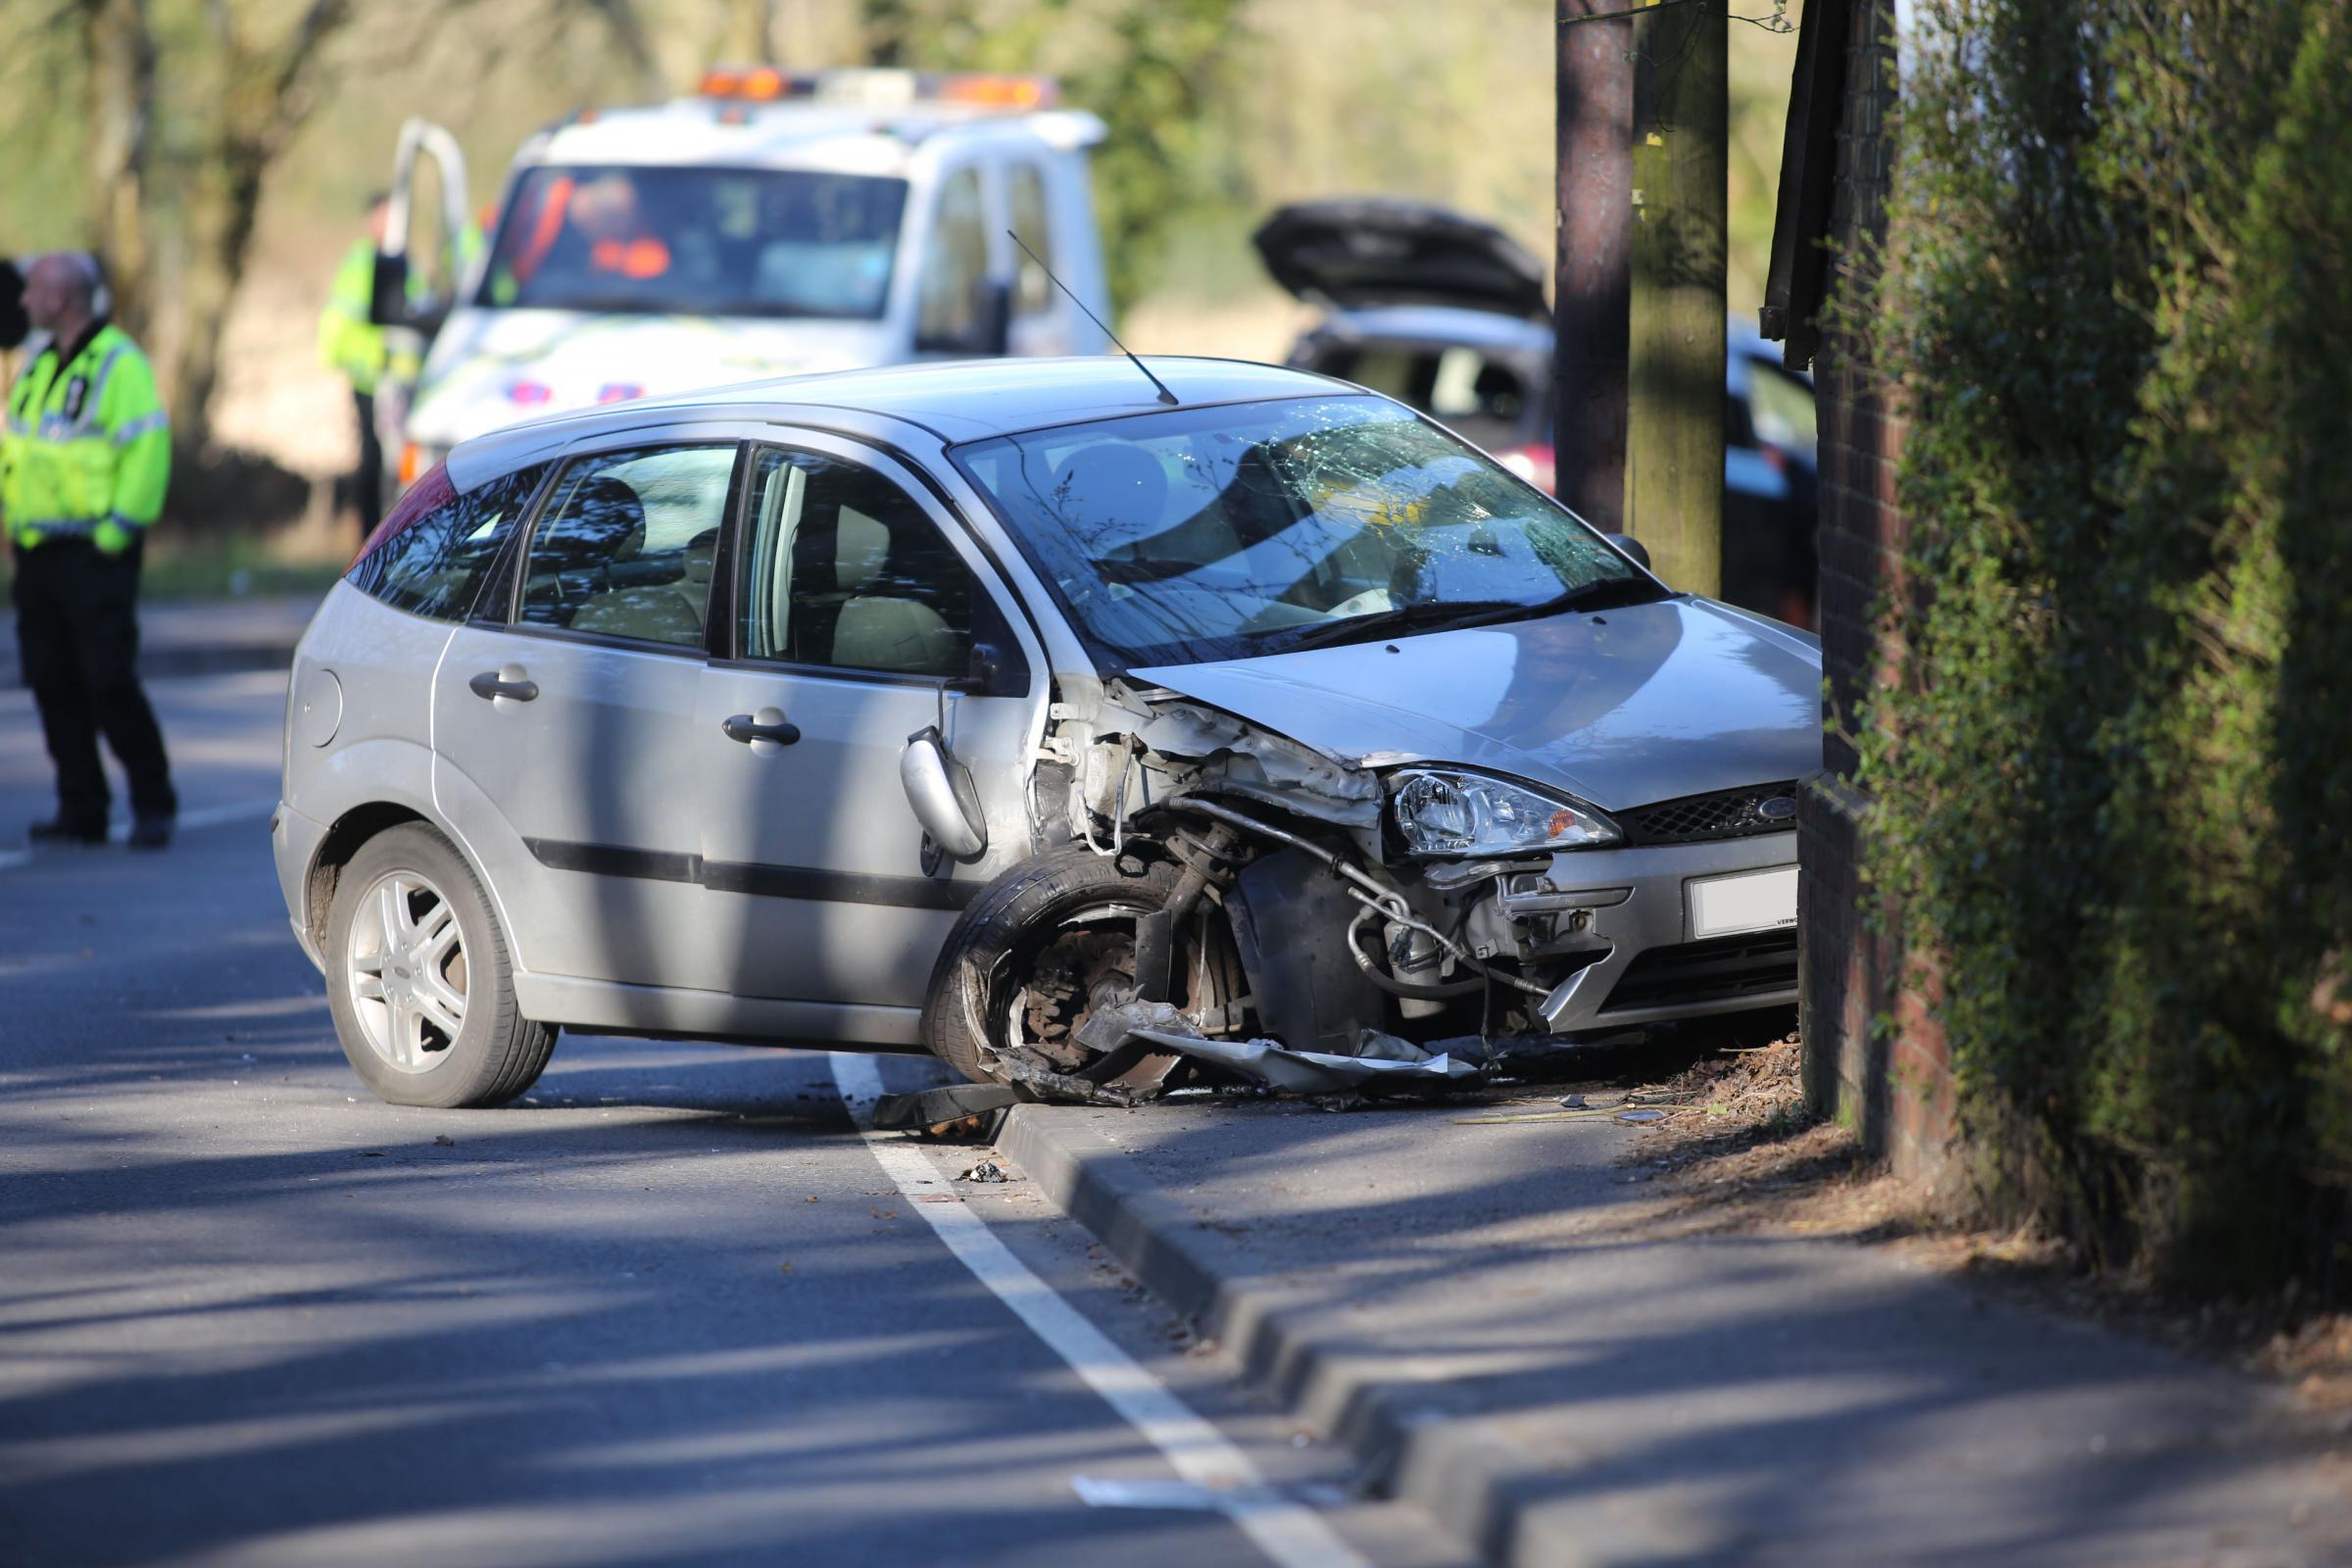 The Ford Focus involved in a collision on the B3072 at Verwood